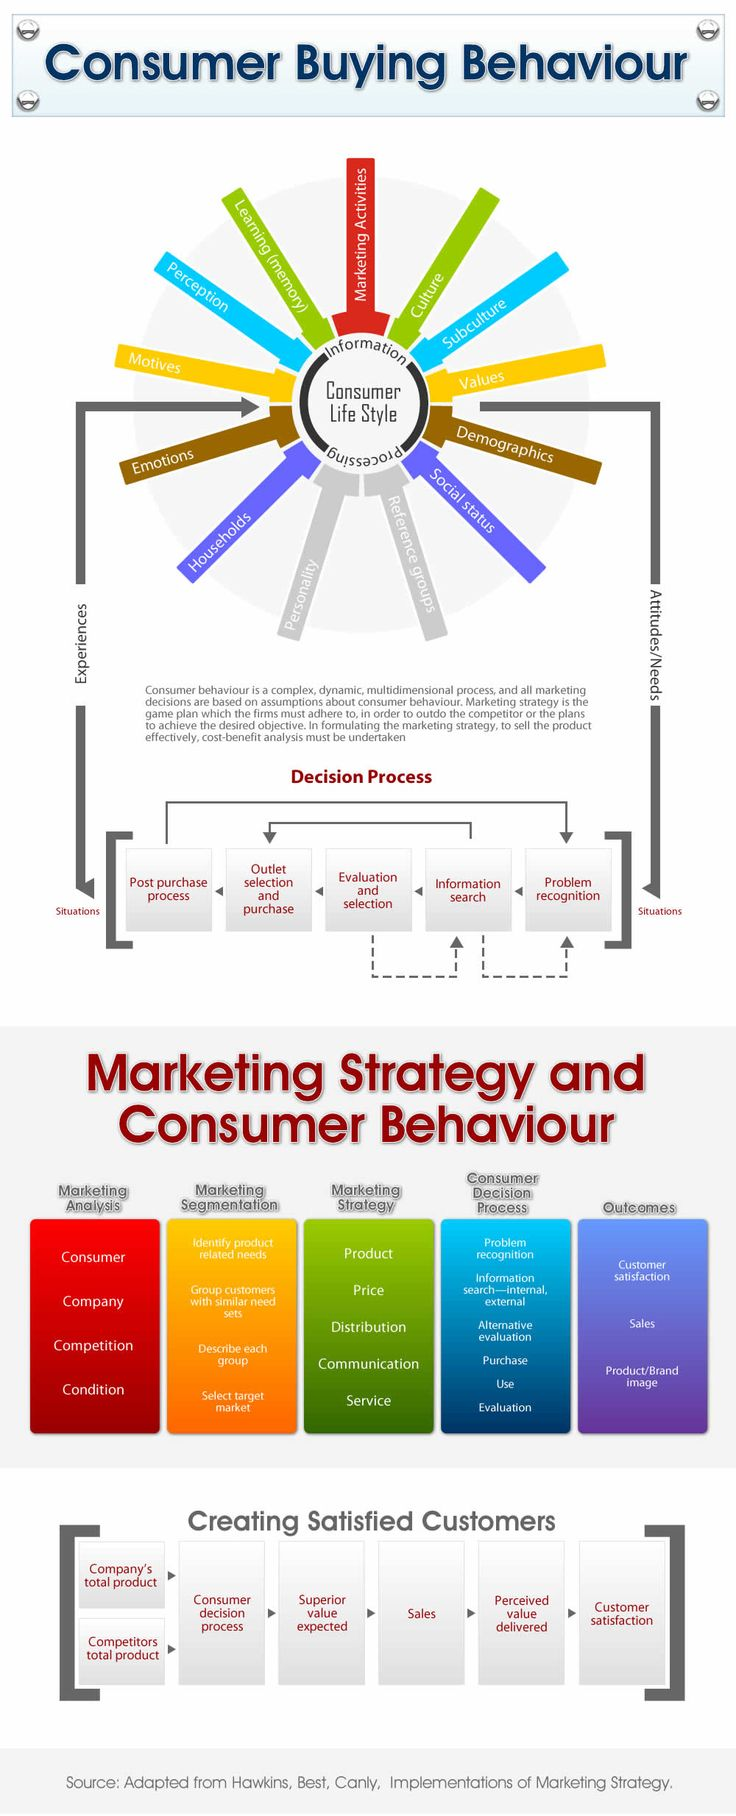 Consumer Buying Behavior simplified!